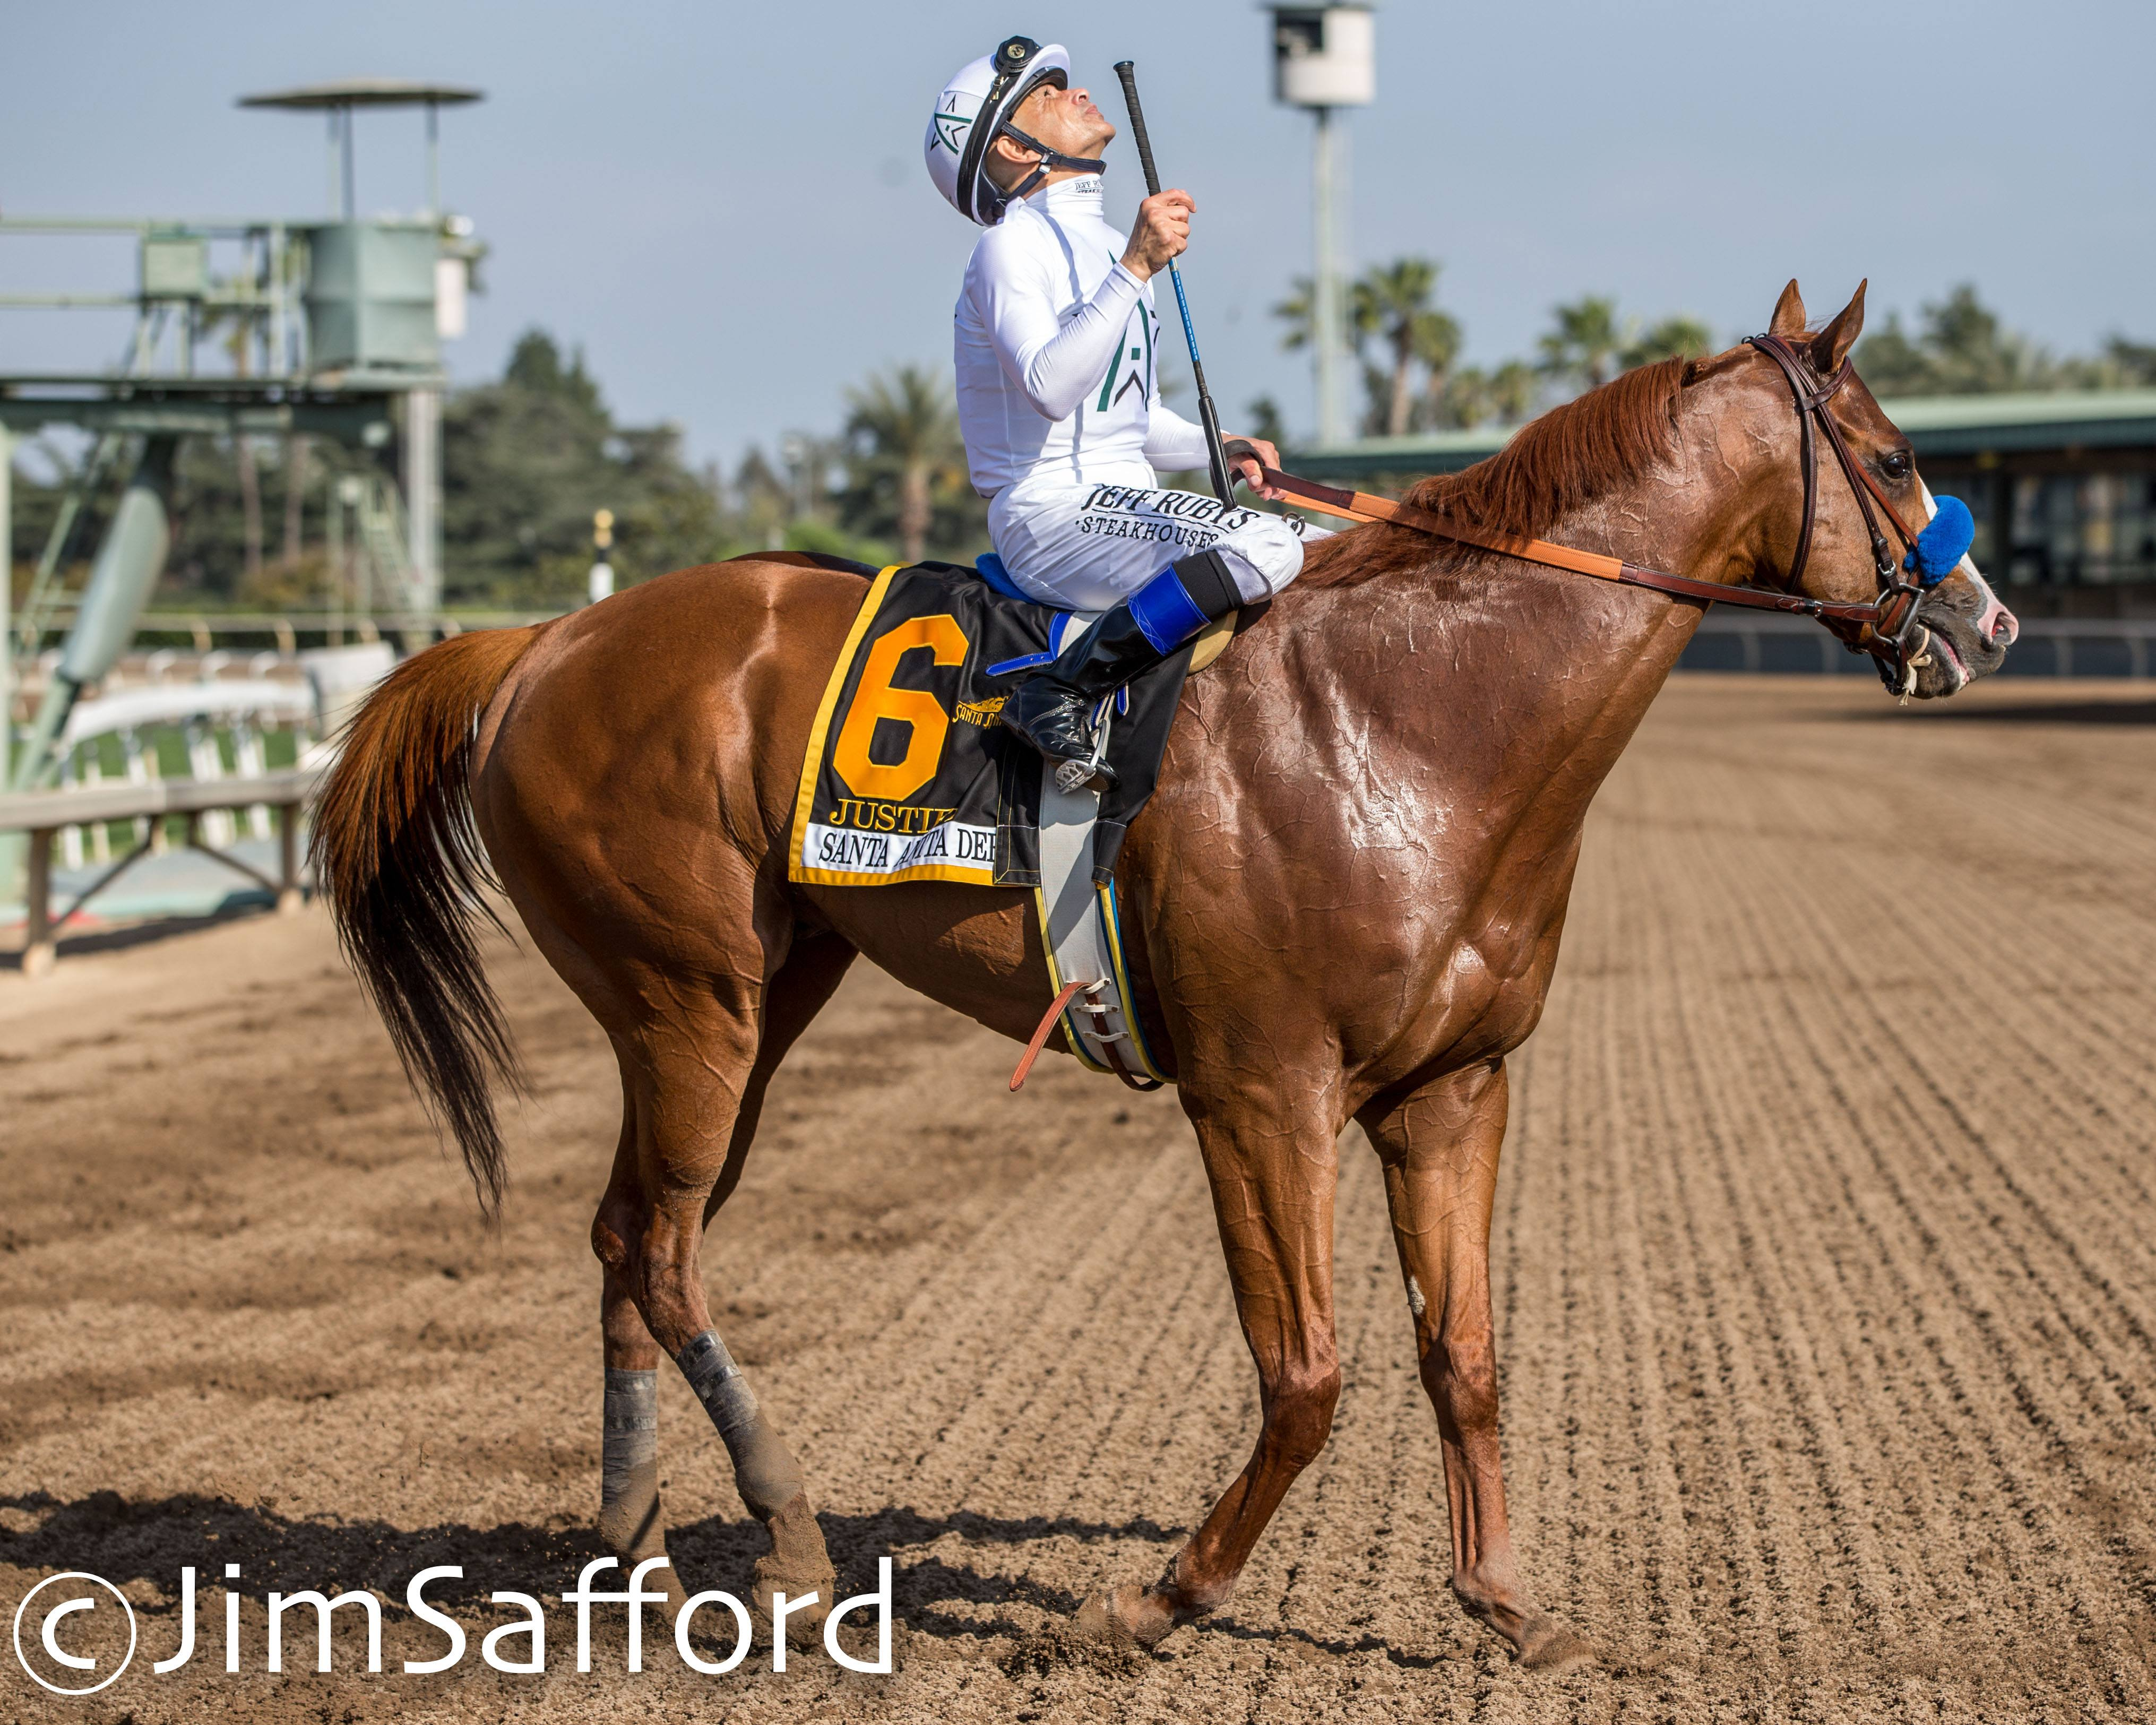 Justify and jockey Mike Smith (photo by Jim Safford).